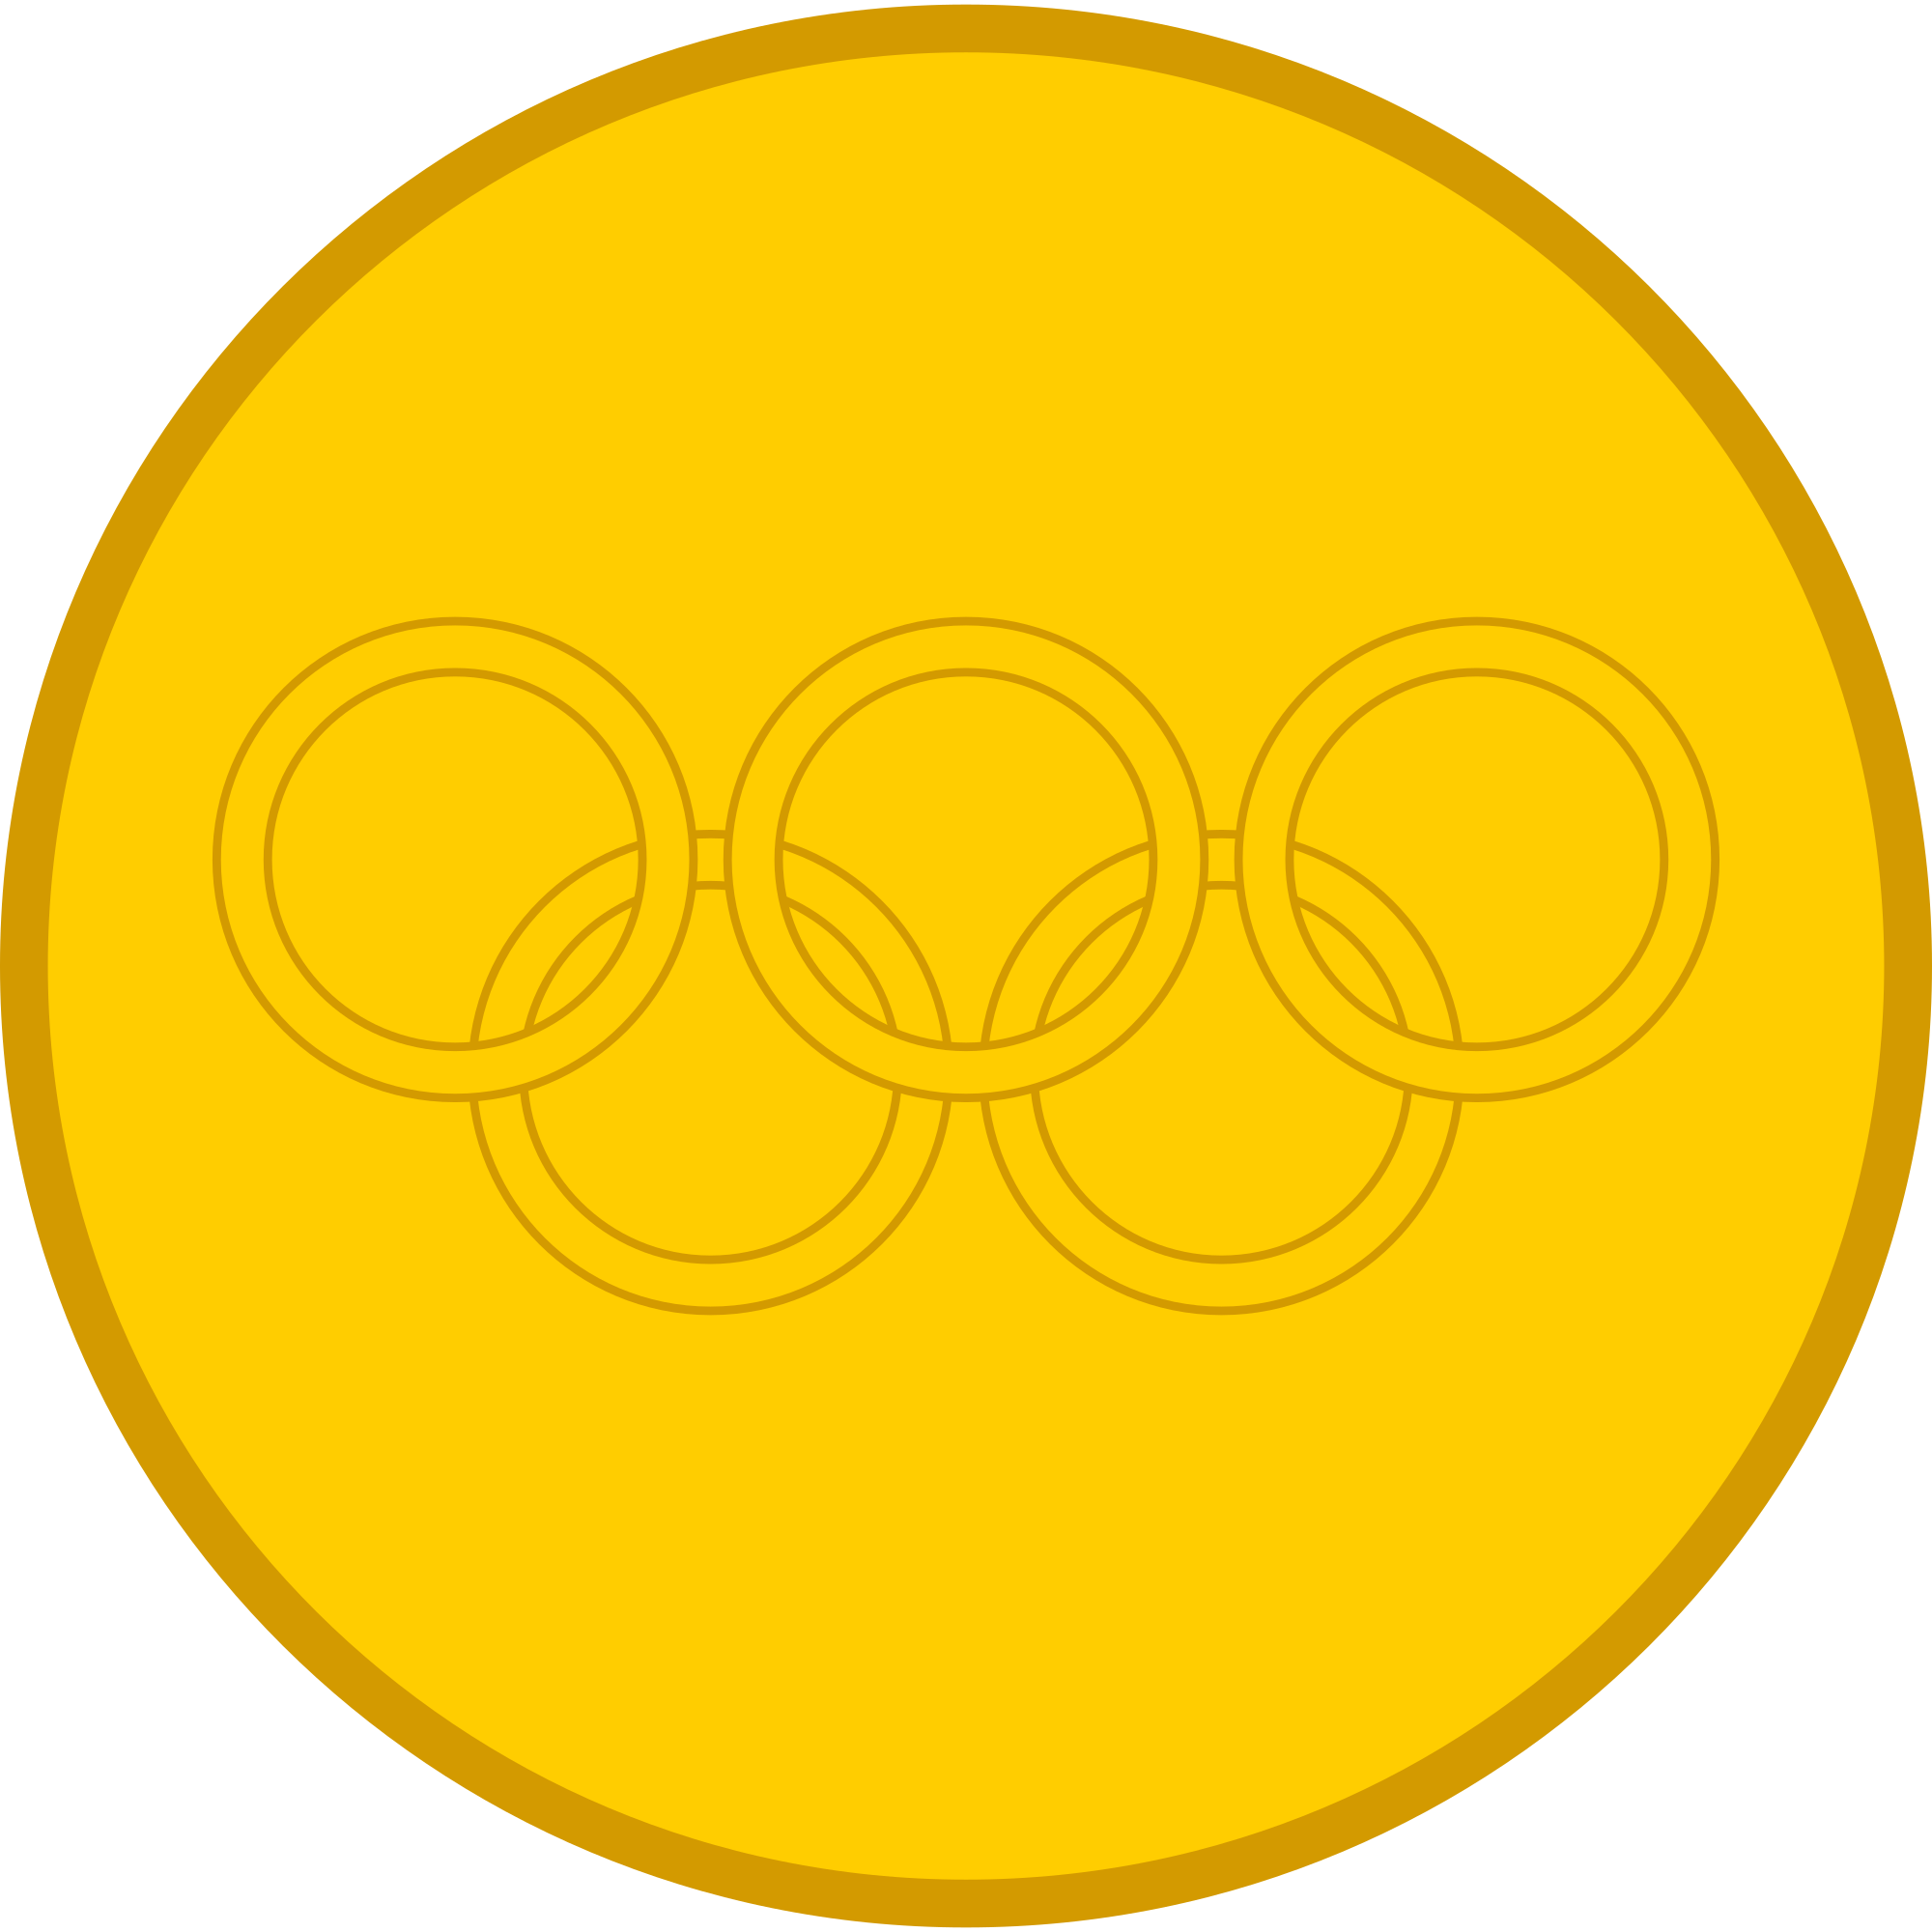 Medals drawing gold metal. File medal svg wikimedia